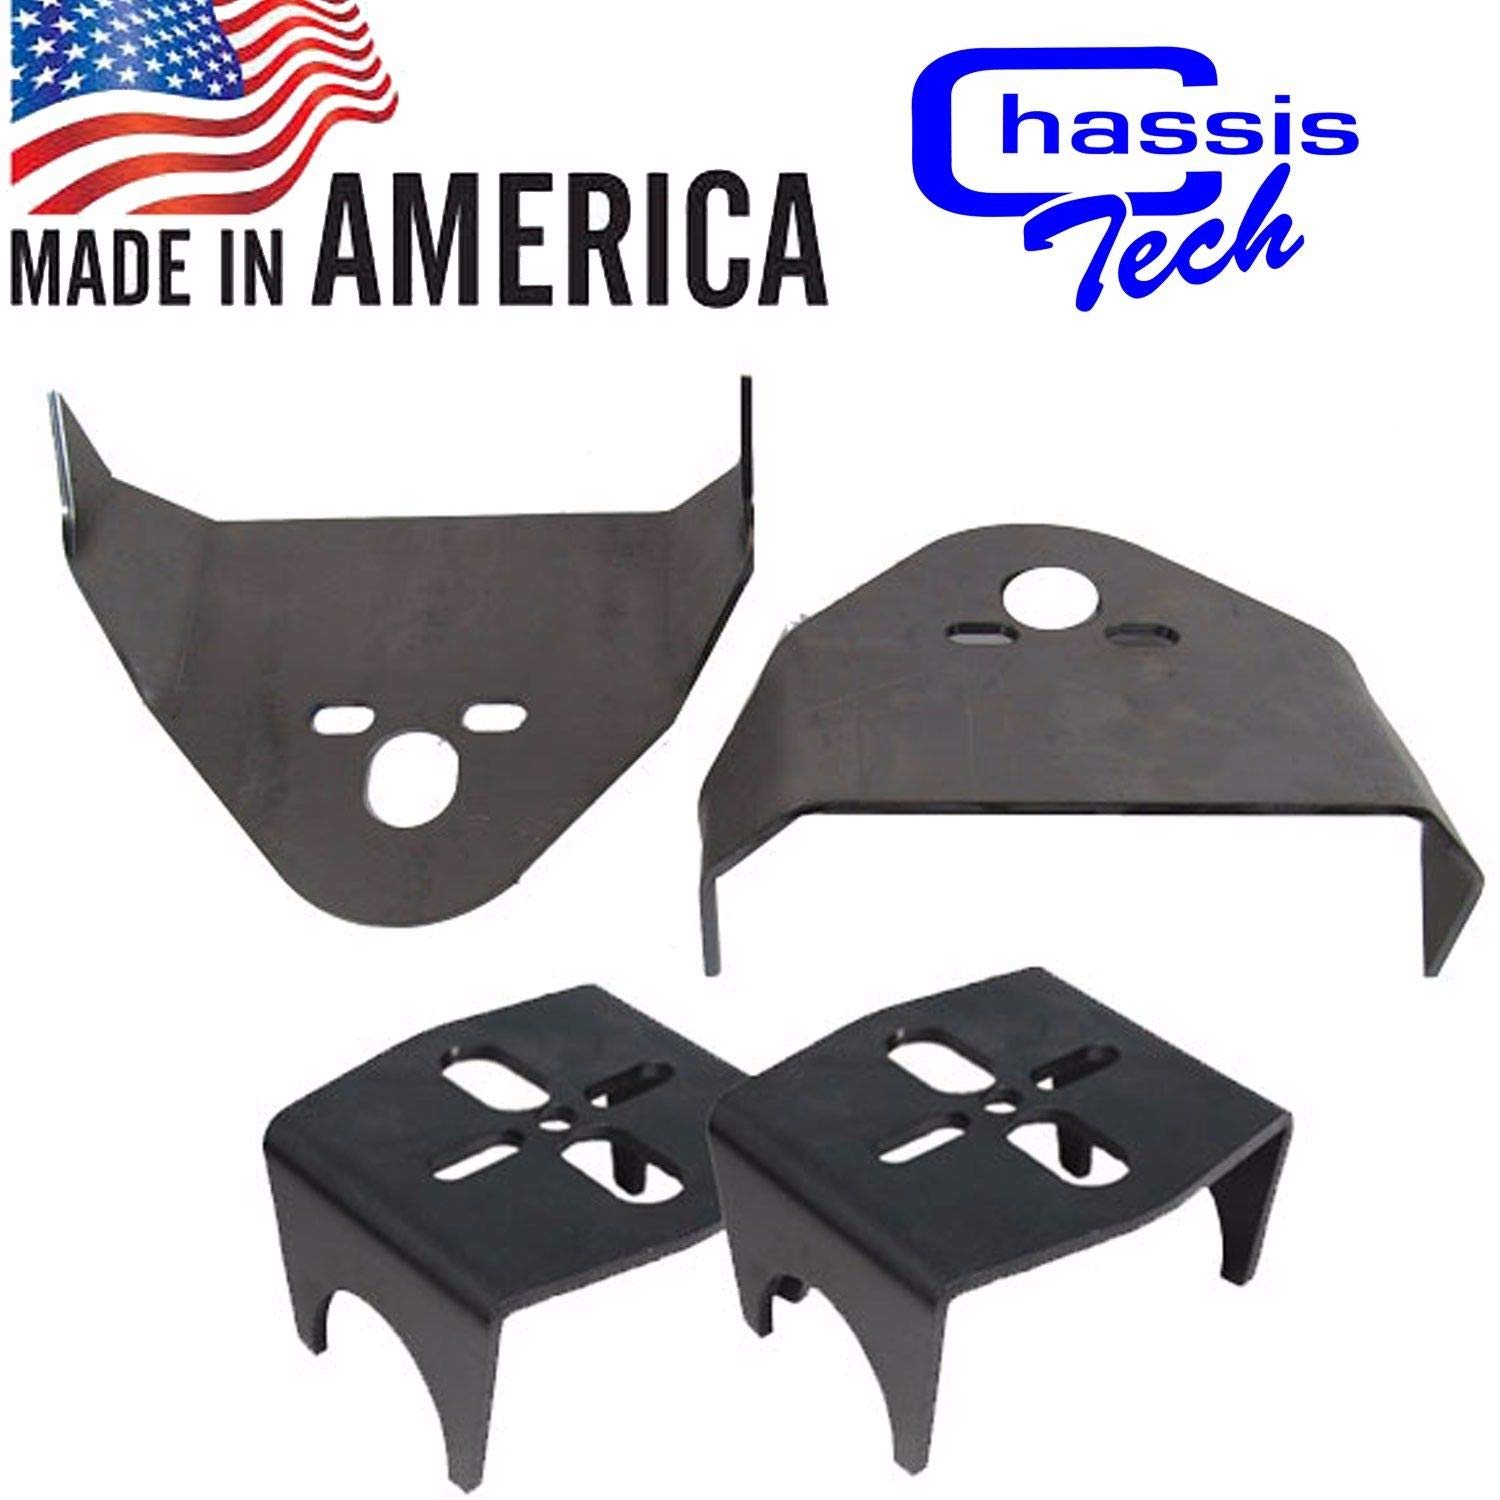 Chassis Tech Weld On Upper & Lower Air Bag Mounting Brackets Mounts Suspension 2.75' Axle Unbranded